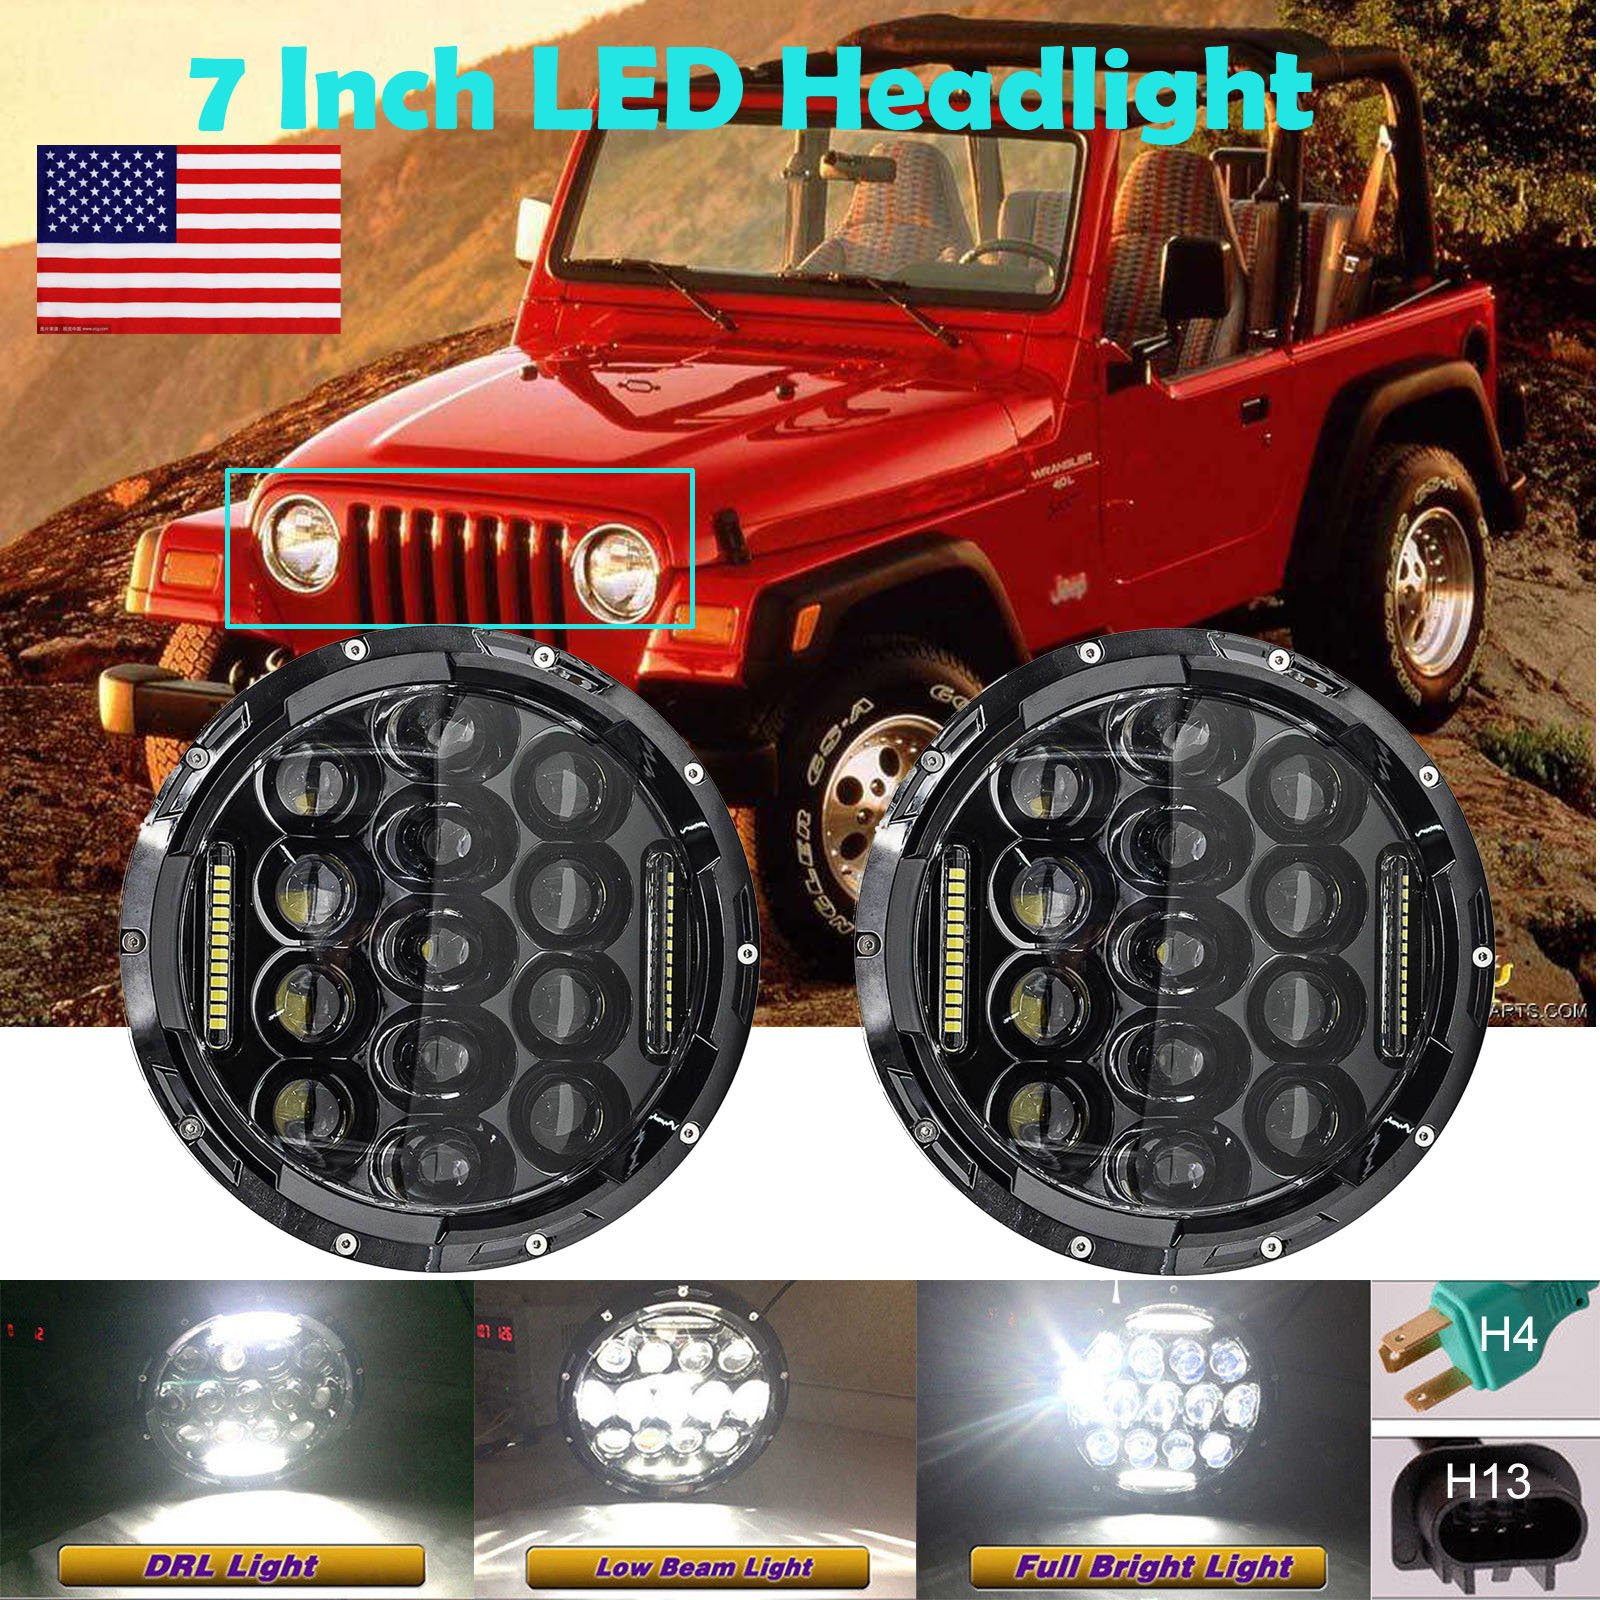 7 Inch For 1997-2006 Jeep Wrangler TJ LED Round Headlights Hi/Lo Double Beam DRL Driving Lamp Replacement 75W 6000K H5024 5024 6012 6014 6015 H6017 H6024 2PCS